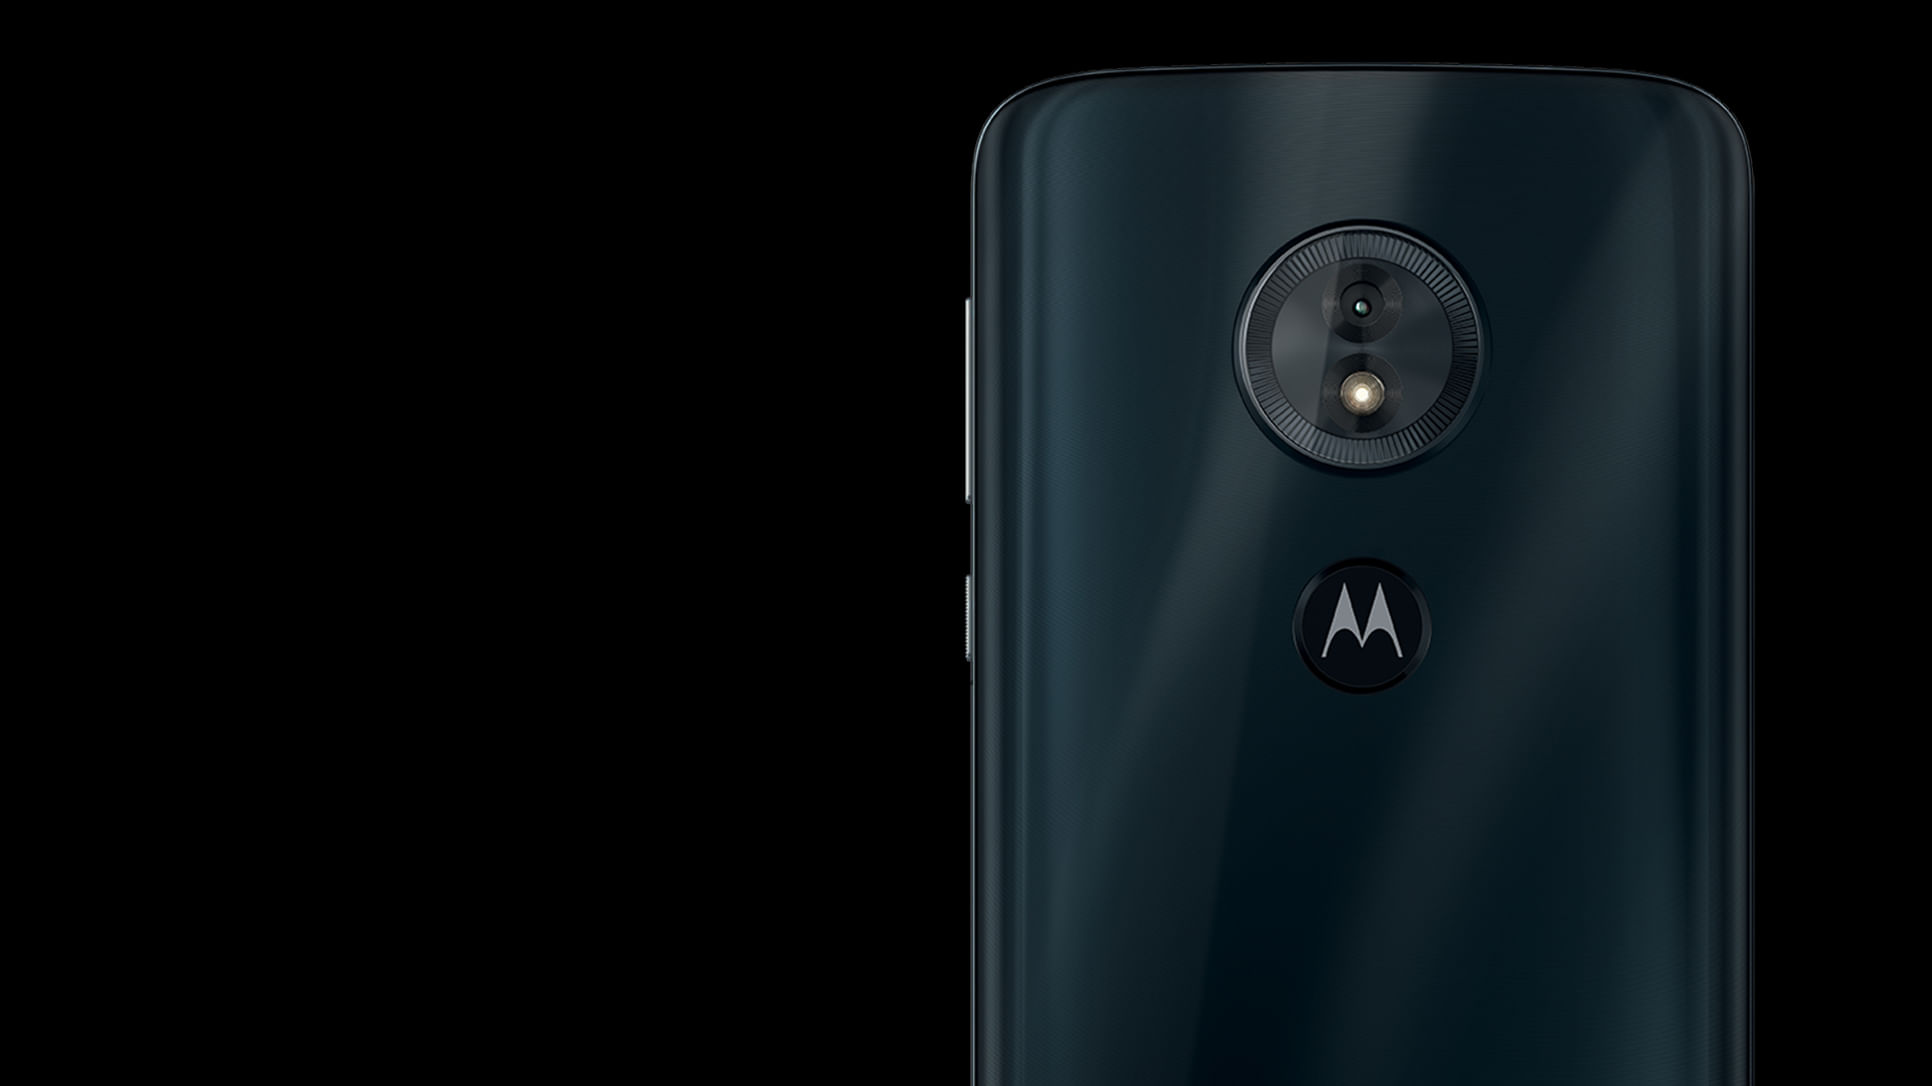 parte de trás do Moto g6 play